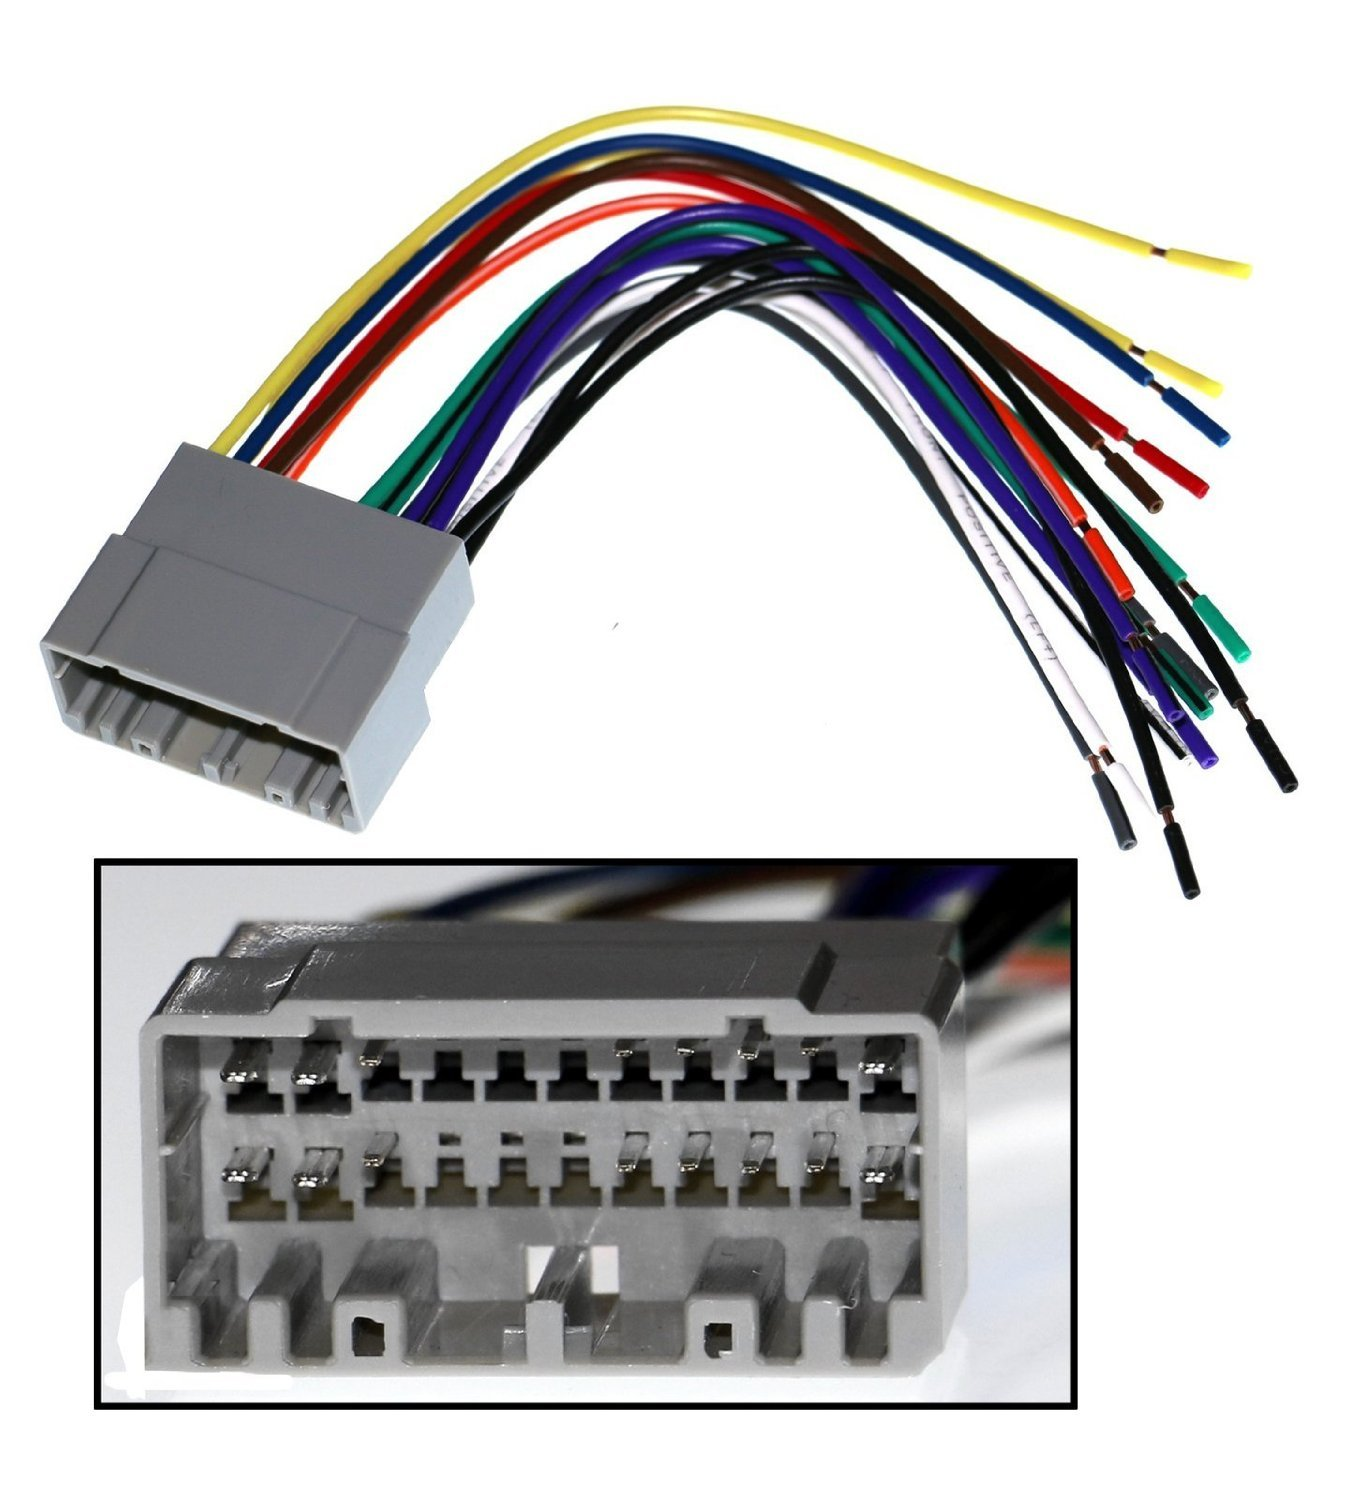 710Q%2BKgavVL._SL1500_ amazon com pioneer car stereo reciever dash install mounting car wiring harness kits at n-0.co